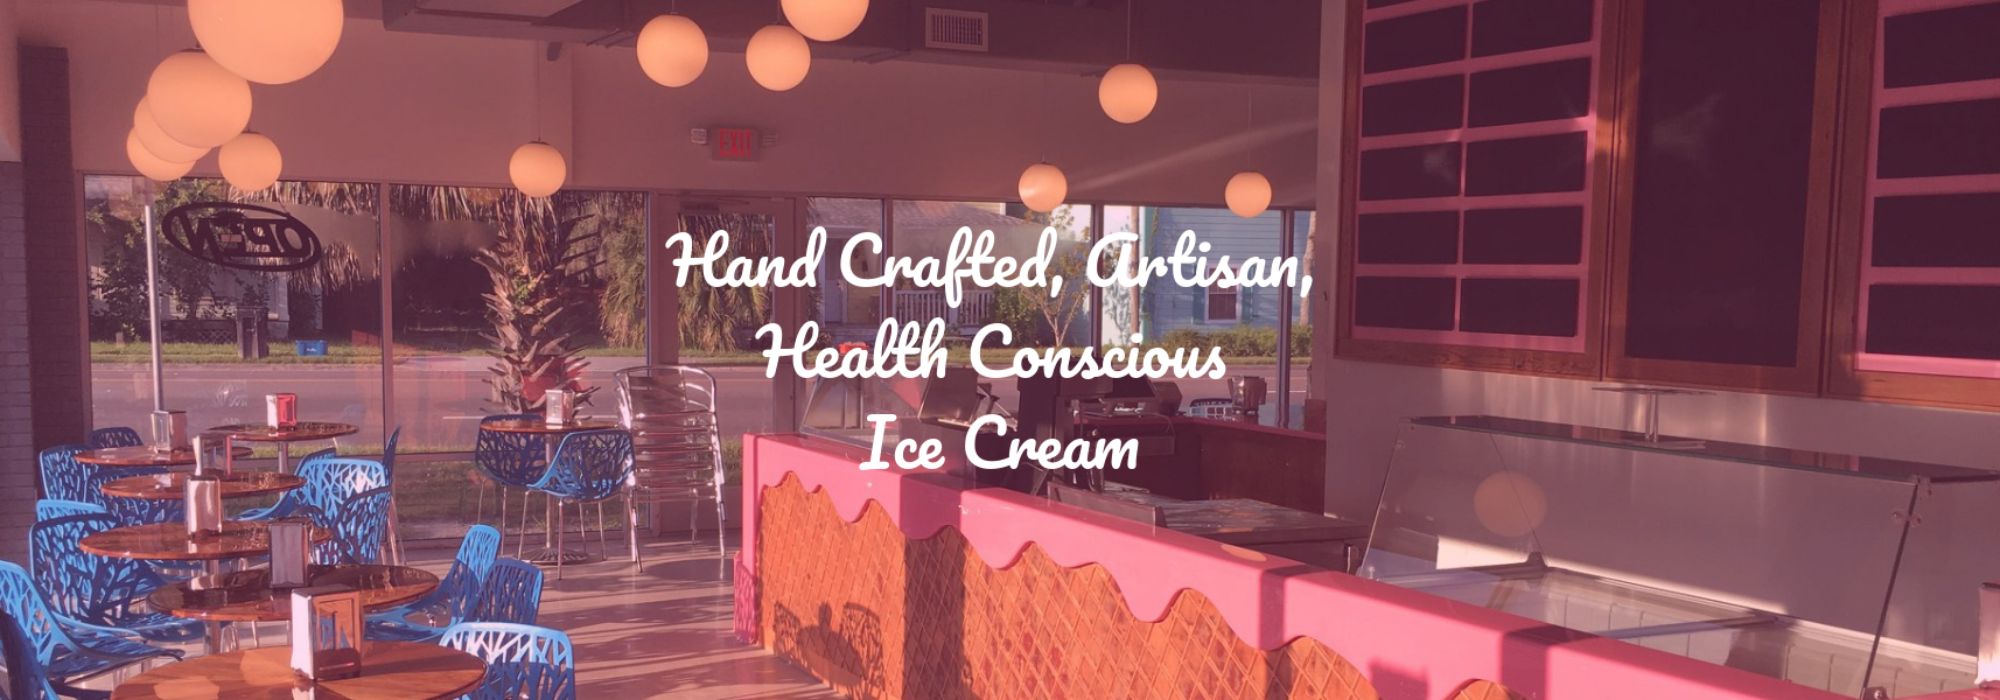 https://secureservercdn.net/198.71.233.31/g5f.0eb.myftpupload.com/wp-content/uploads/2019/08/Hand-Crafted-Artisan-Health-Conscious-Ice-Cream-2000x700.png